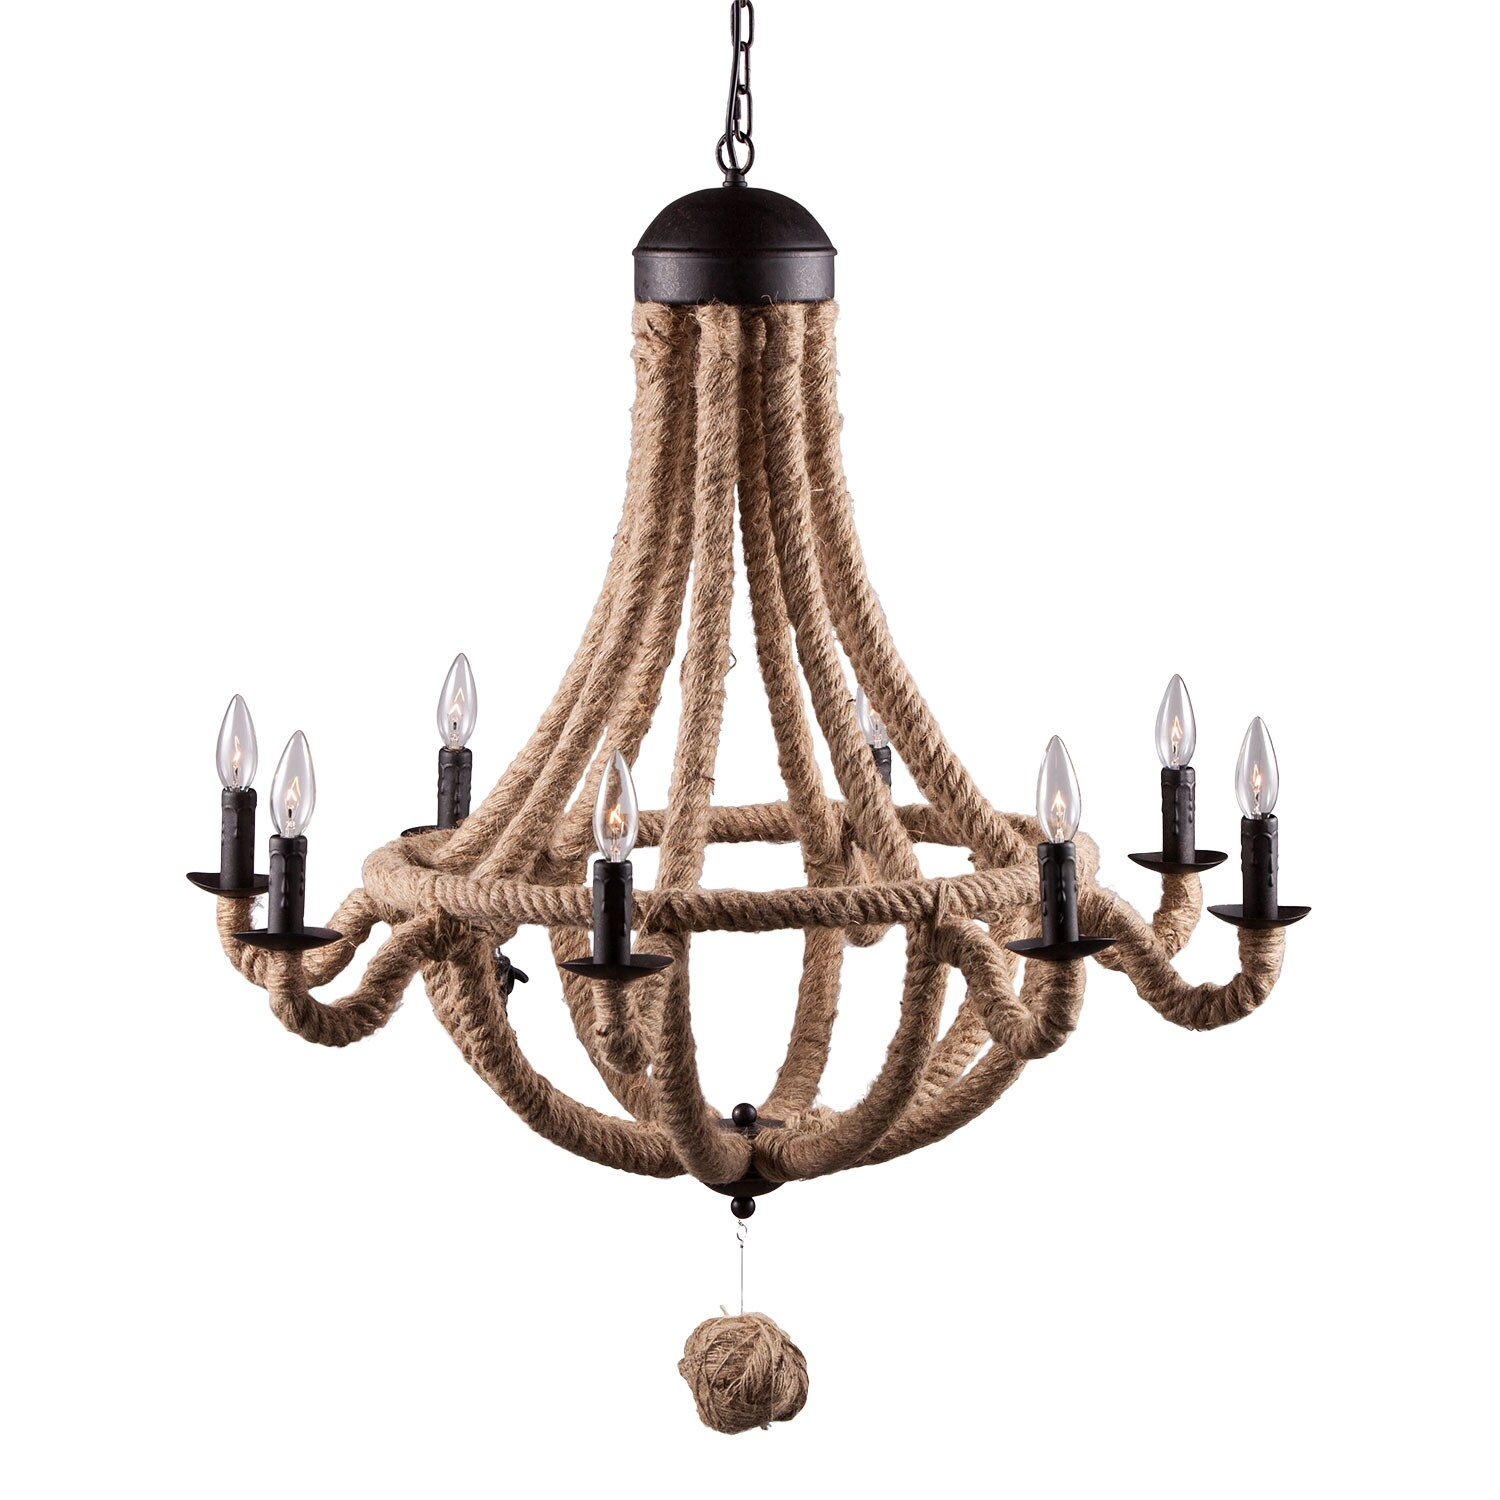 Home Accessories - Celestine Chandelier